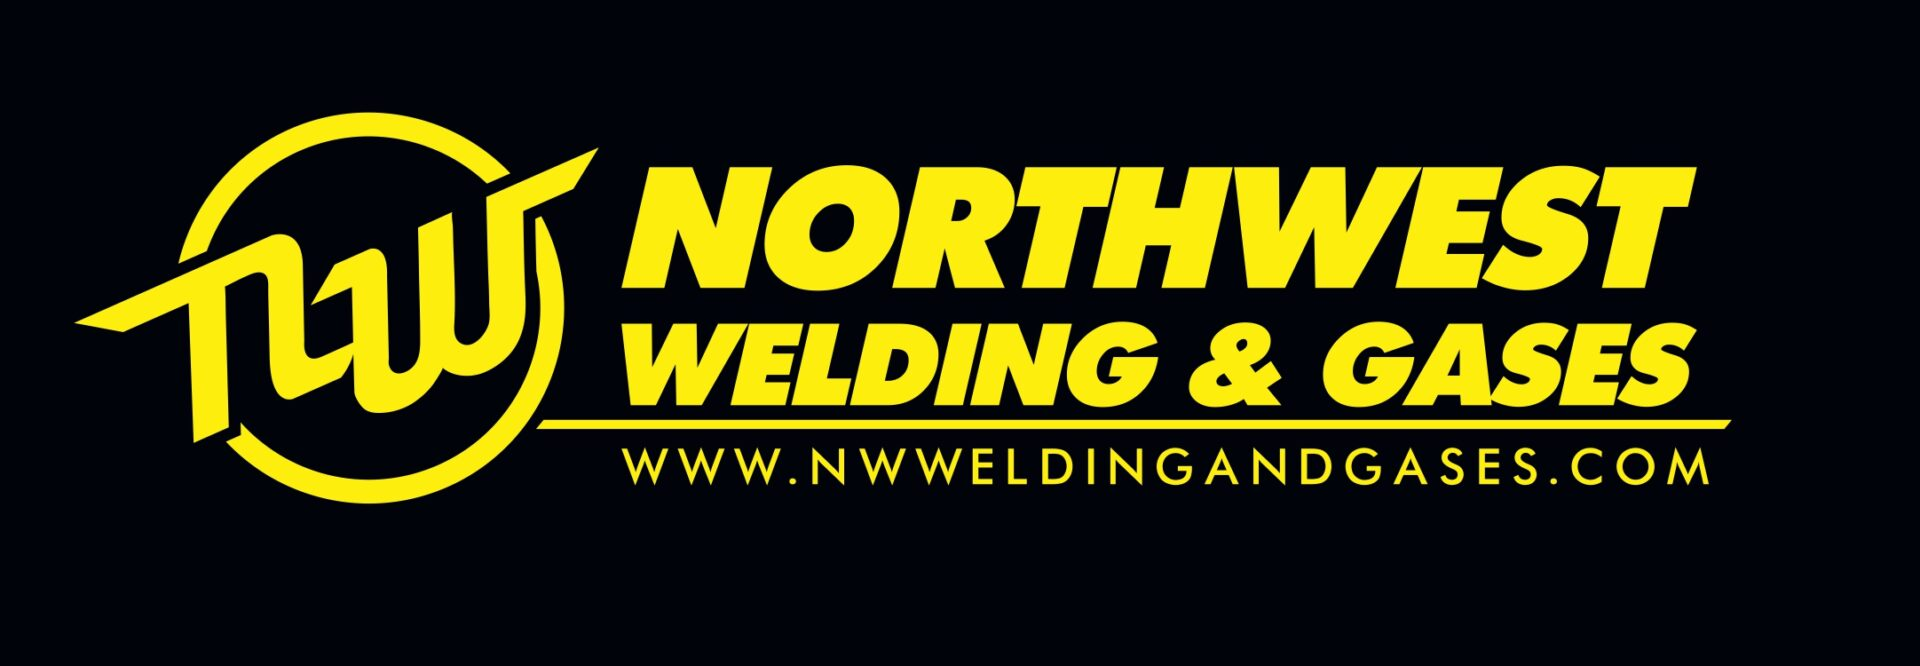 northwest welding logo decal_page-0001